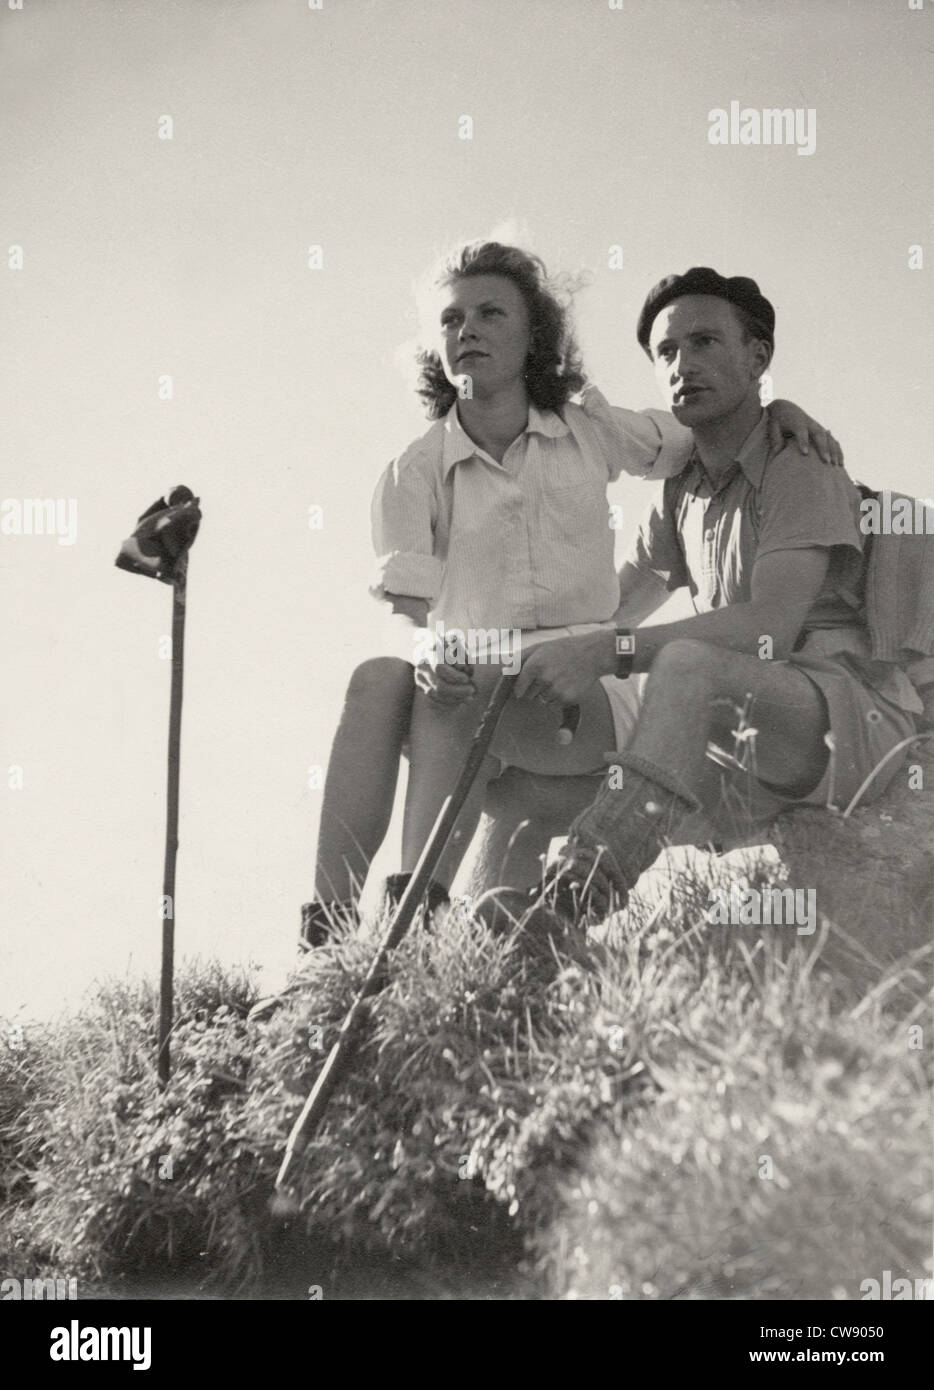 A couple of hikers in the '60s - Stock Image